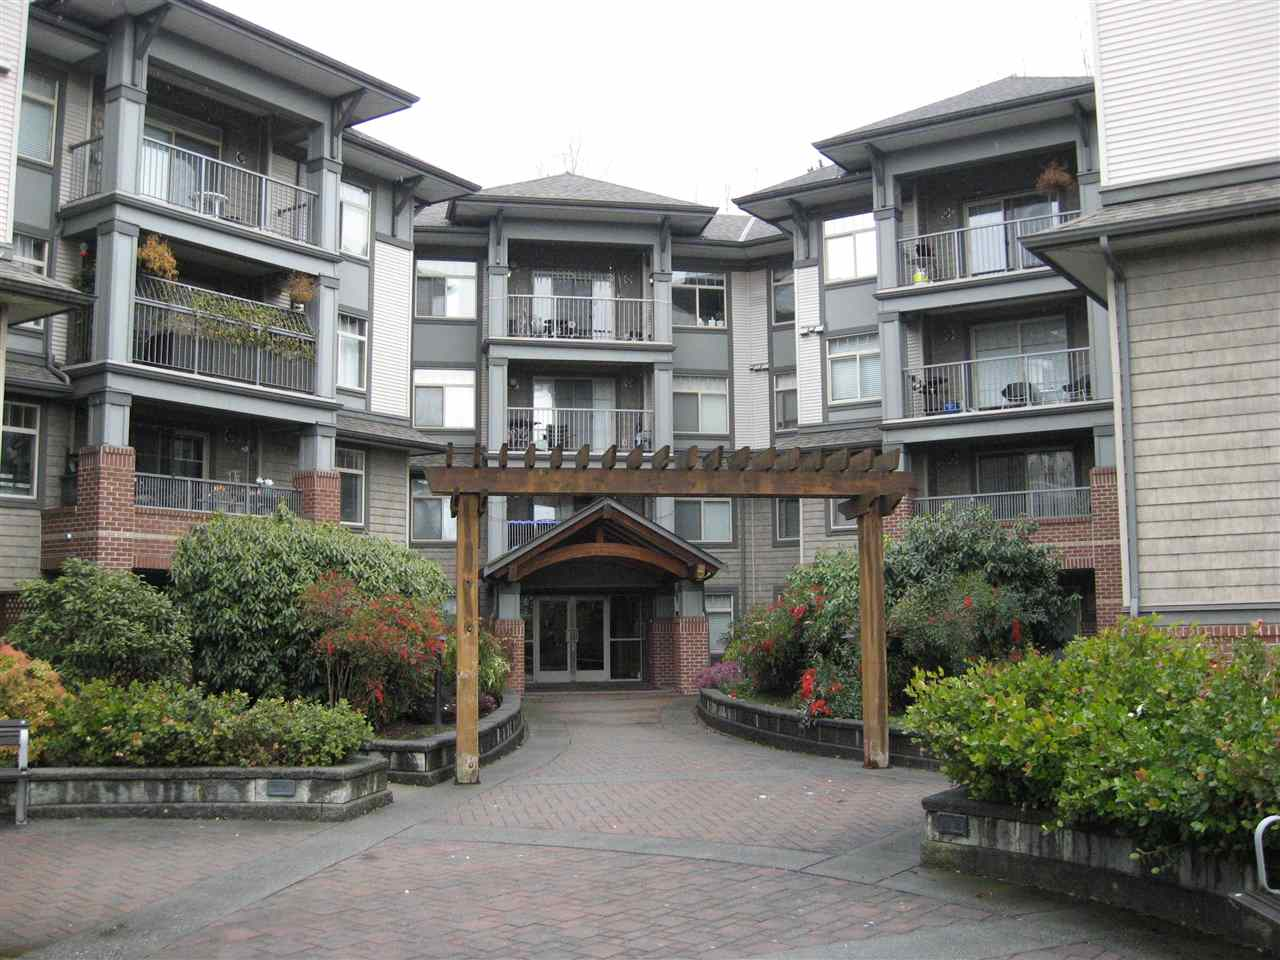 Looking in Pitt Meadows? Well consider the �??Westbrooke�?? on the Westside of Maple Ridge. Only 5min to Meadowtown Centre, Meadow Station (WCE) and 15 min to Coquitlam Centre & Skytrain. This 1172 sq ft northwest corner unit on the quiet side of the building offers a spacious floor plan with 2 bedrooms and a den which could easily be a 3rd bedroom. Beautiful bright kitchen with granite counters, breakfast bar and stainless steel appliances with built in microwave. Large laundry room with storage and nice covered balcony with northwest views. Pet friendly building with guest suite, rec room and bonus gas & hot water included in strata fees. Comes with 1 parking & storage locker. Close to transit, schools and 5 min walk to shops. Shows great and well managed building. Don�??t wait, call now to view and bring your offer!